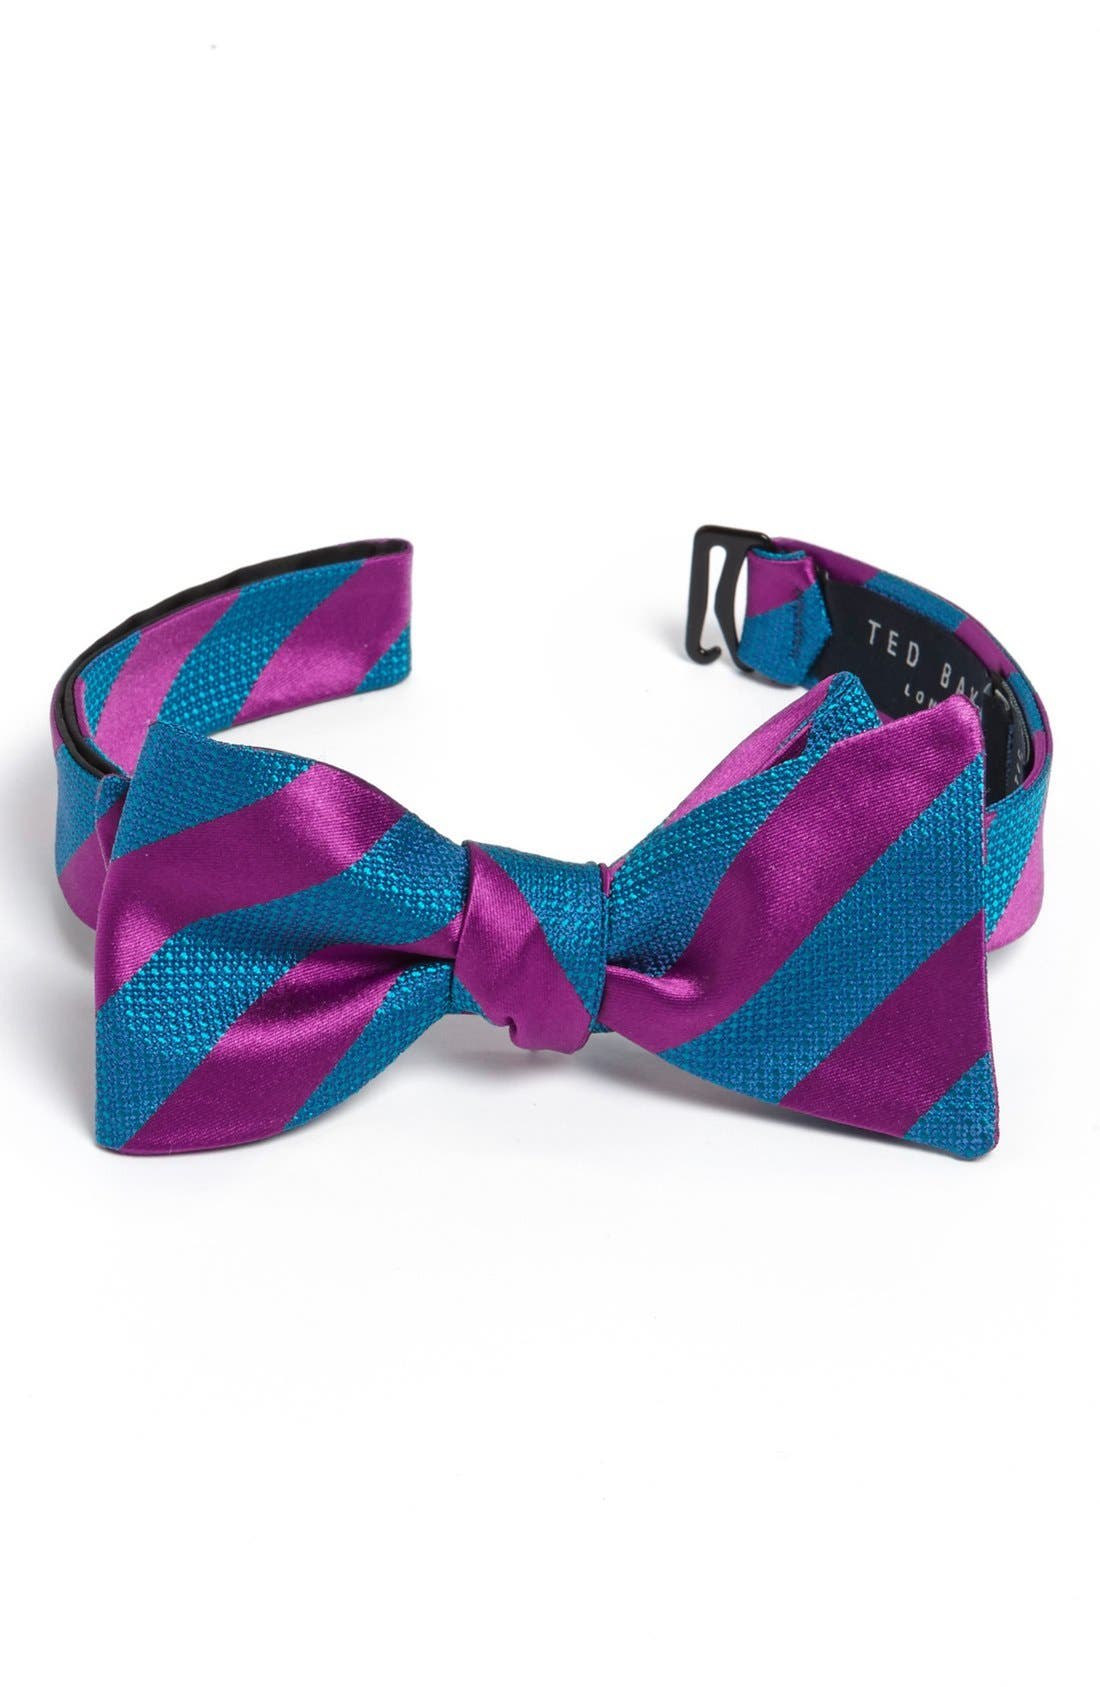 Alternate Image 1 Selected - Ted Baker London Woven Silk Bow Tie